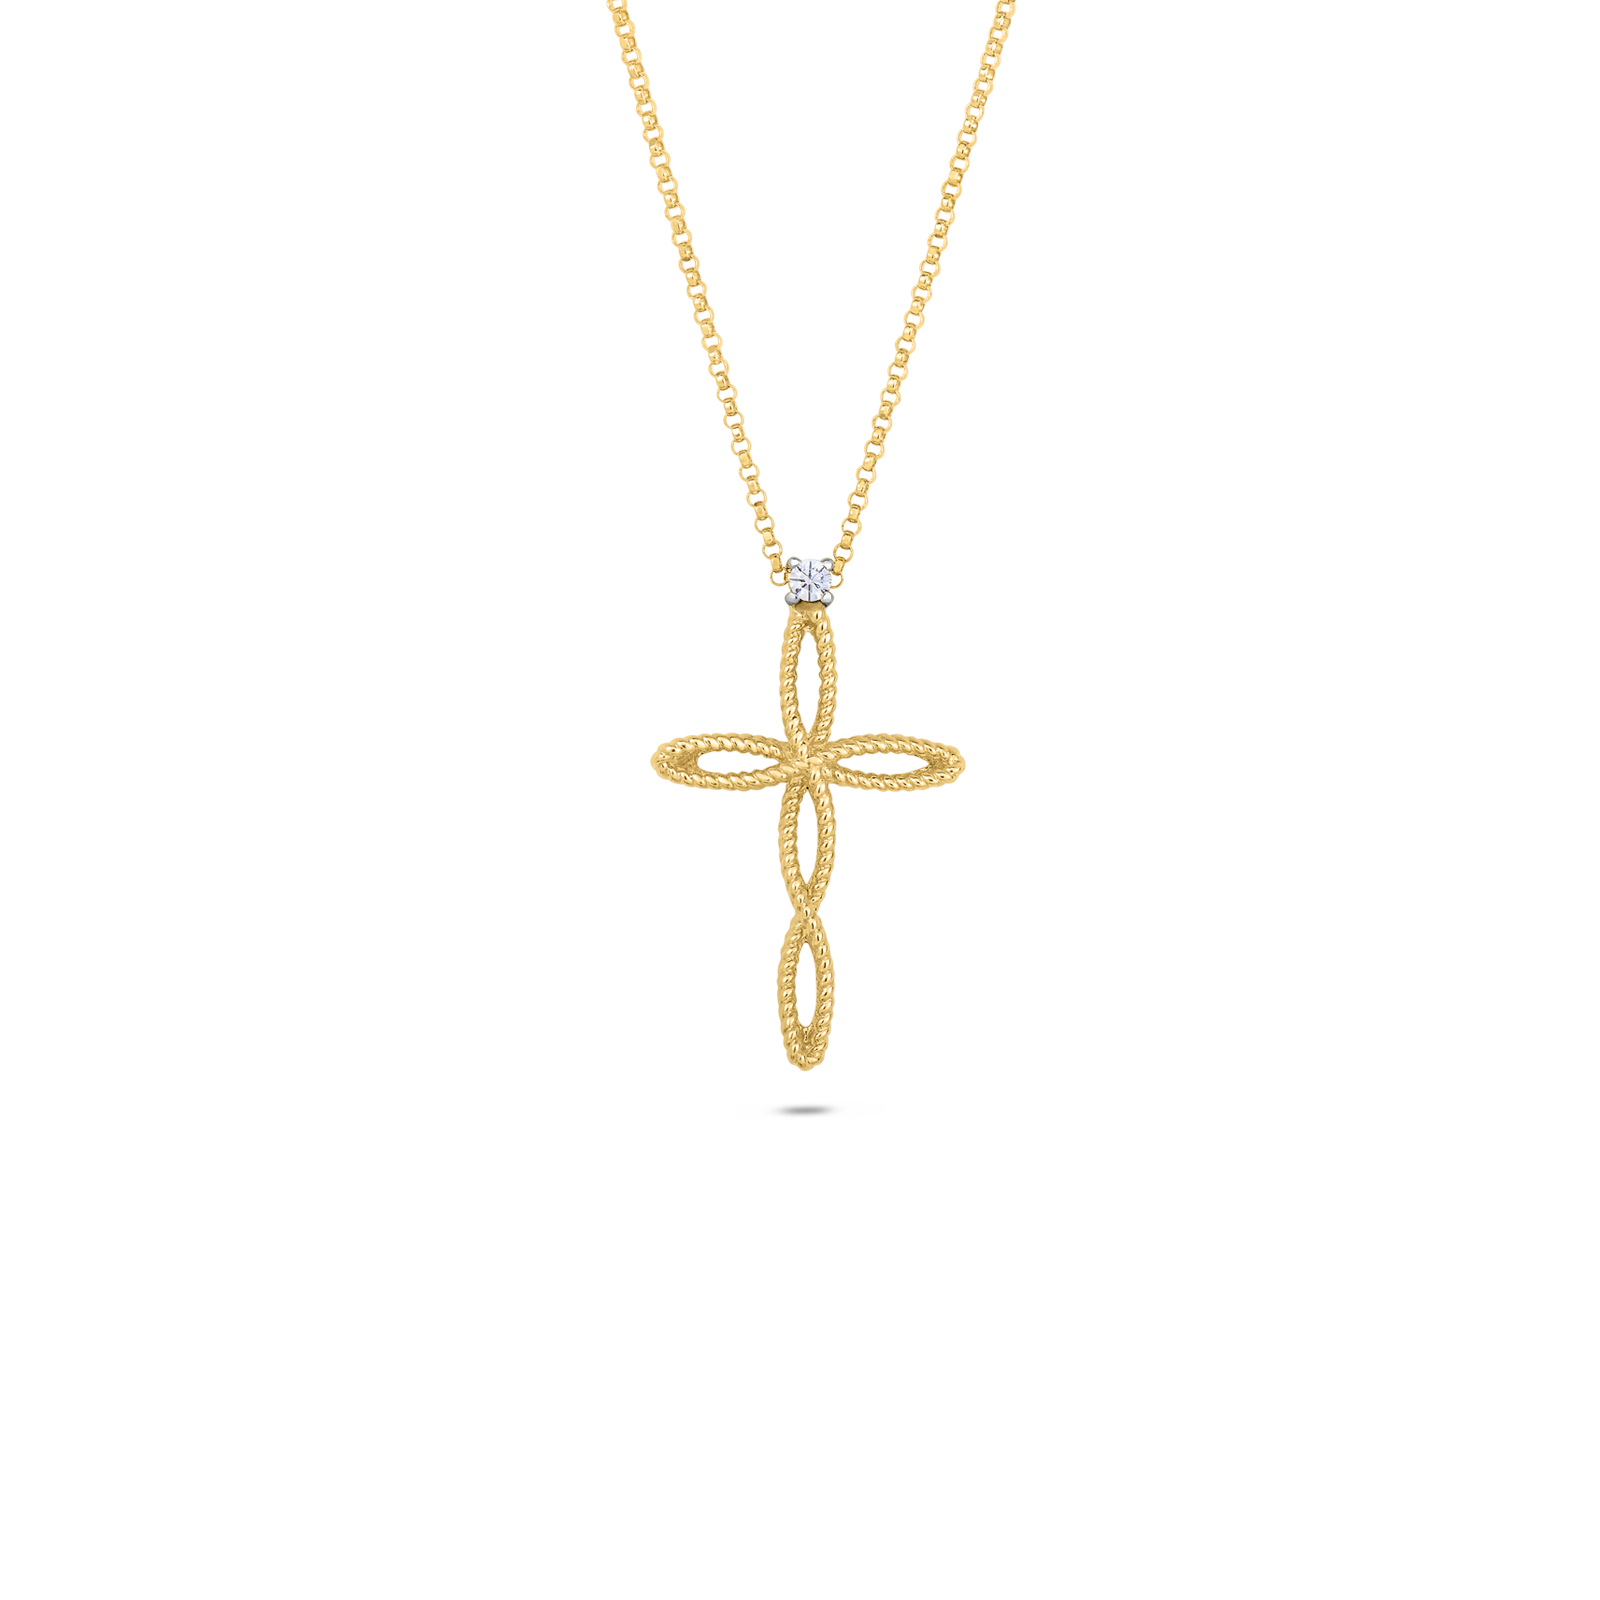 Italian Gold Cross Pendant With Diamonds by Roberto Coin